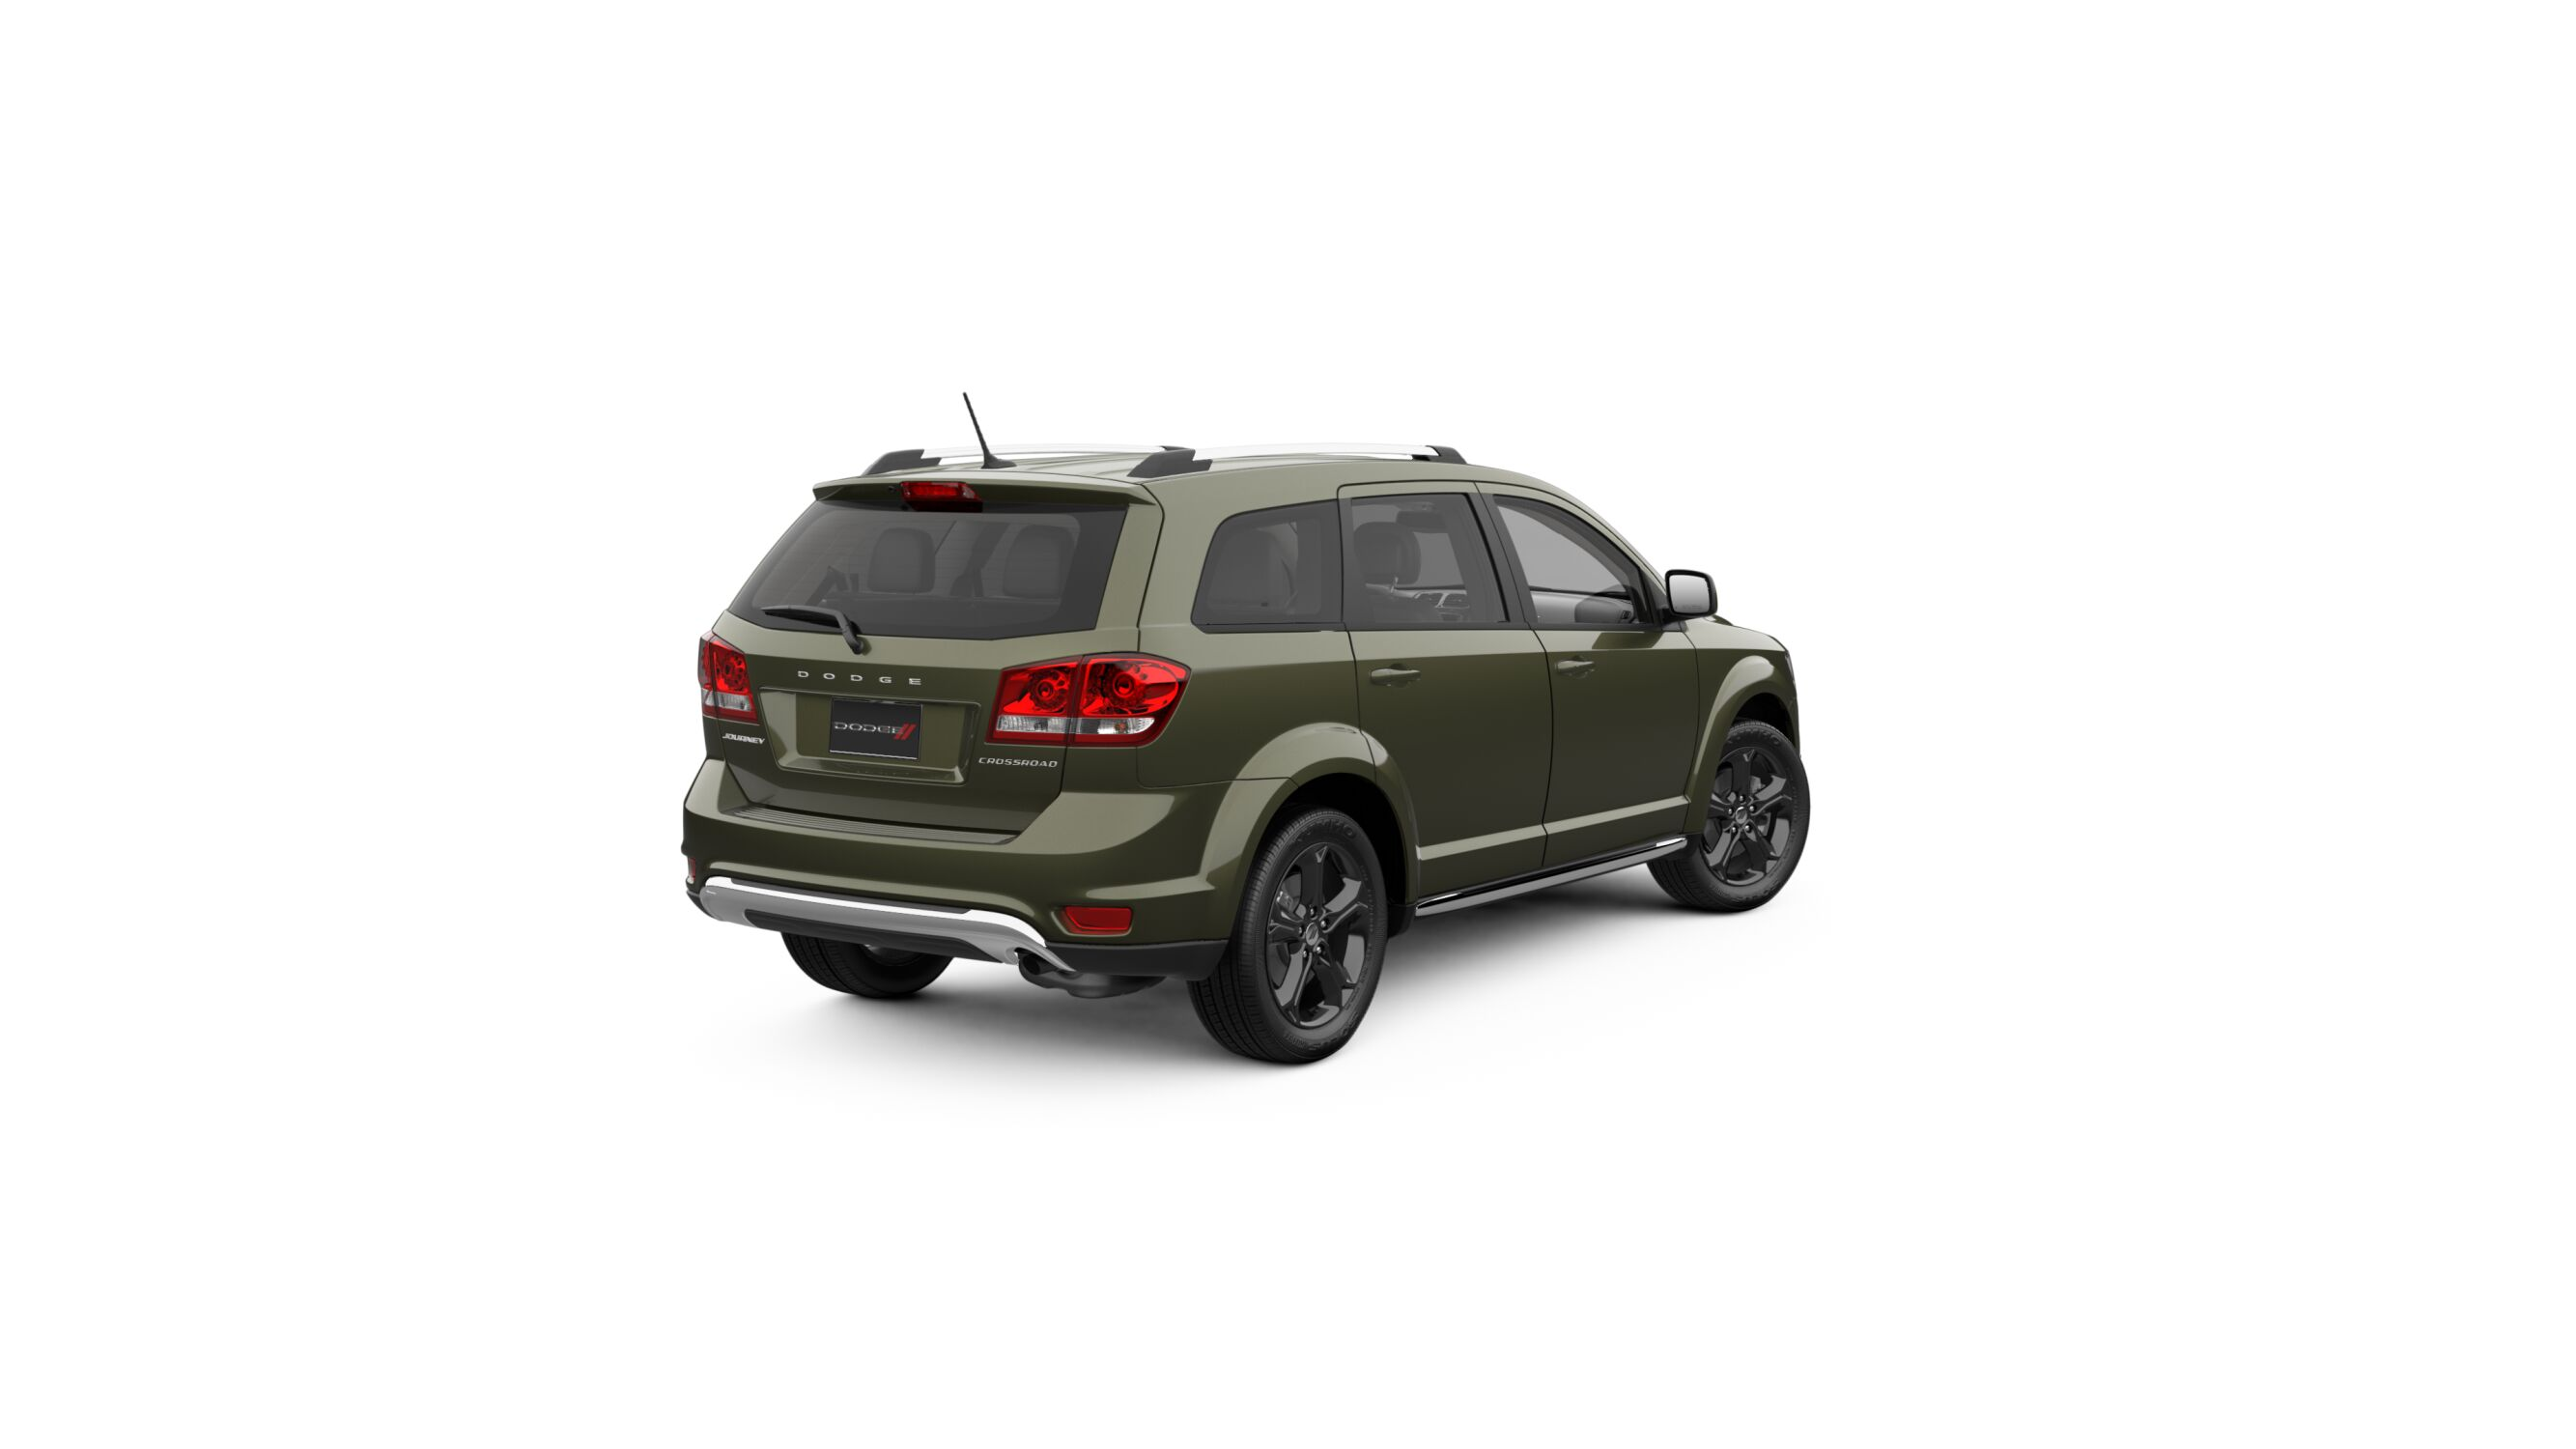 2018 Dodge Journey Crossroad Olive Green Exterior Rear View